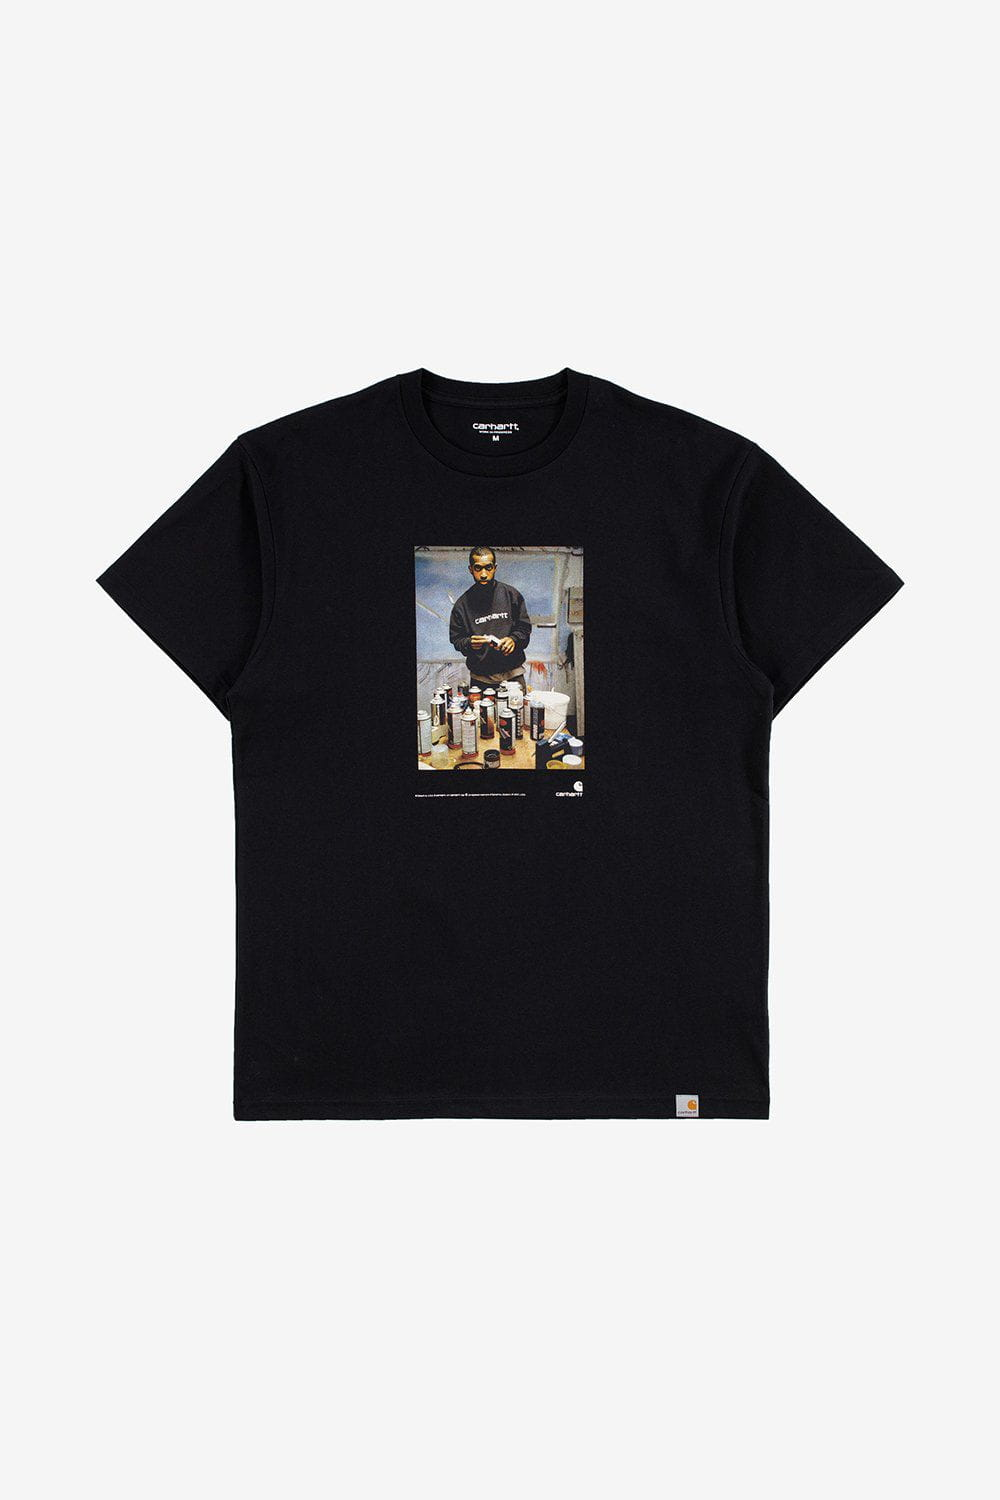 Carhartt WIP Apparel 1998 AD Jayone T-shirt